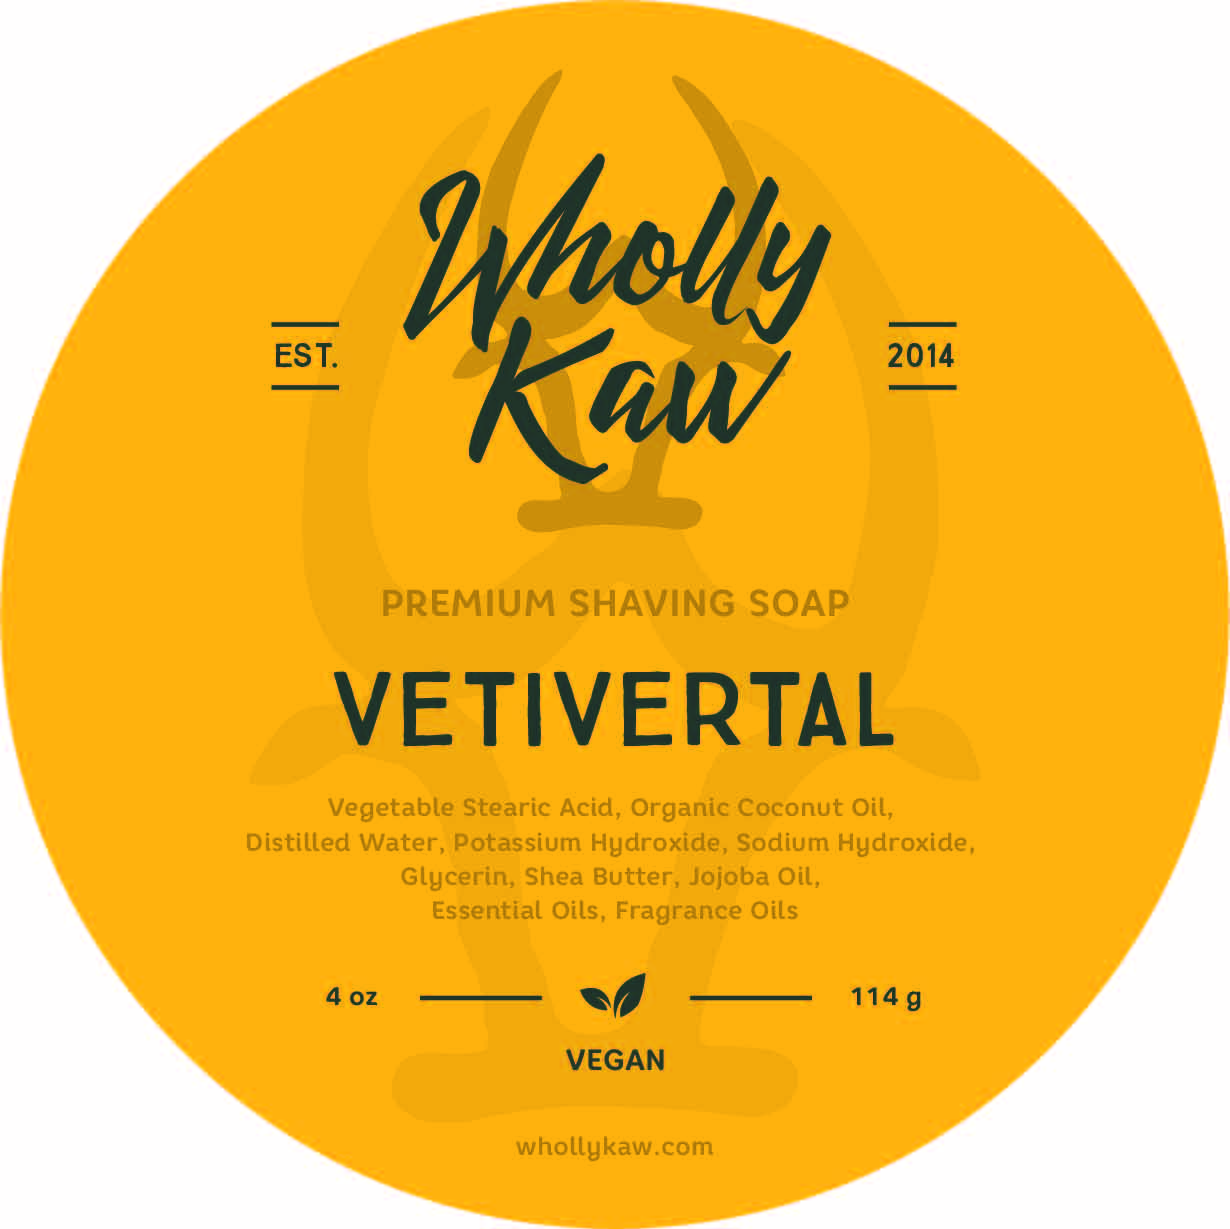 Wholly Kaw - Vetivertal - Soap (Vegan) image